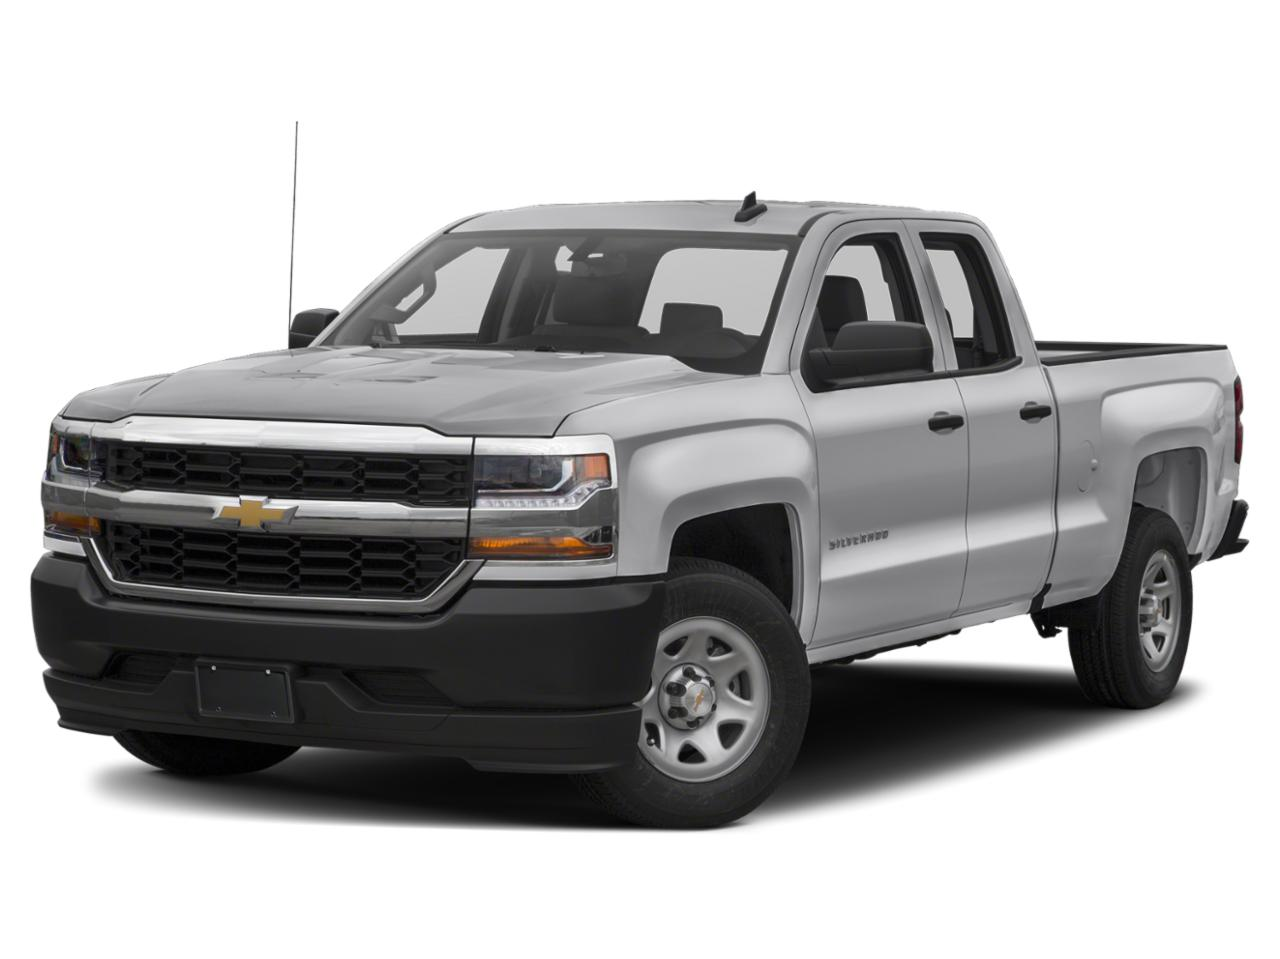 2019 Chevrolet Silverado 1500 LD Vehicle Photo in Houston, TX 77090